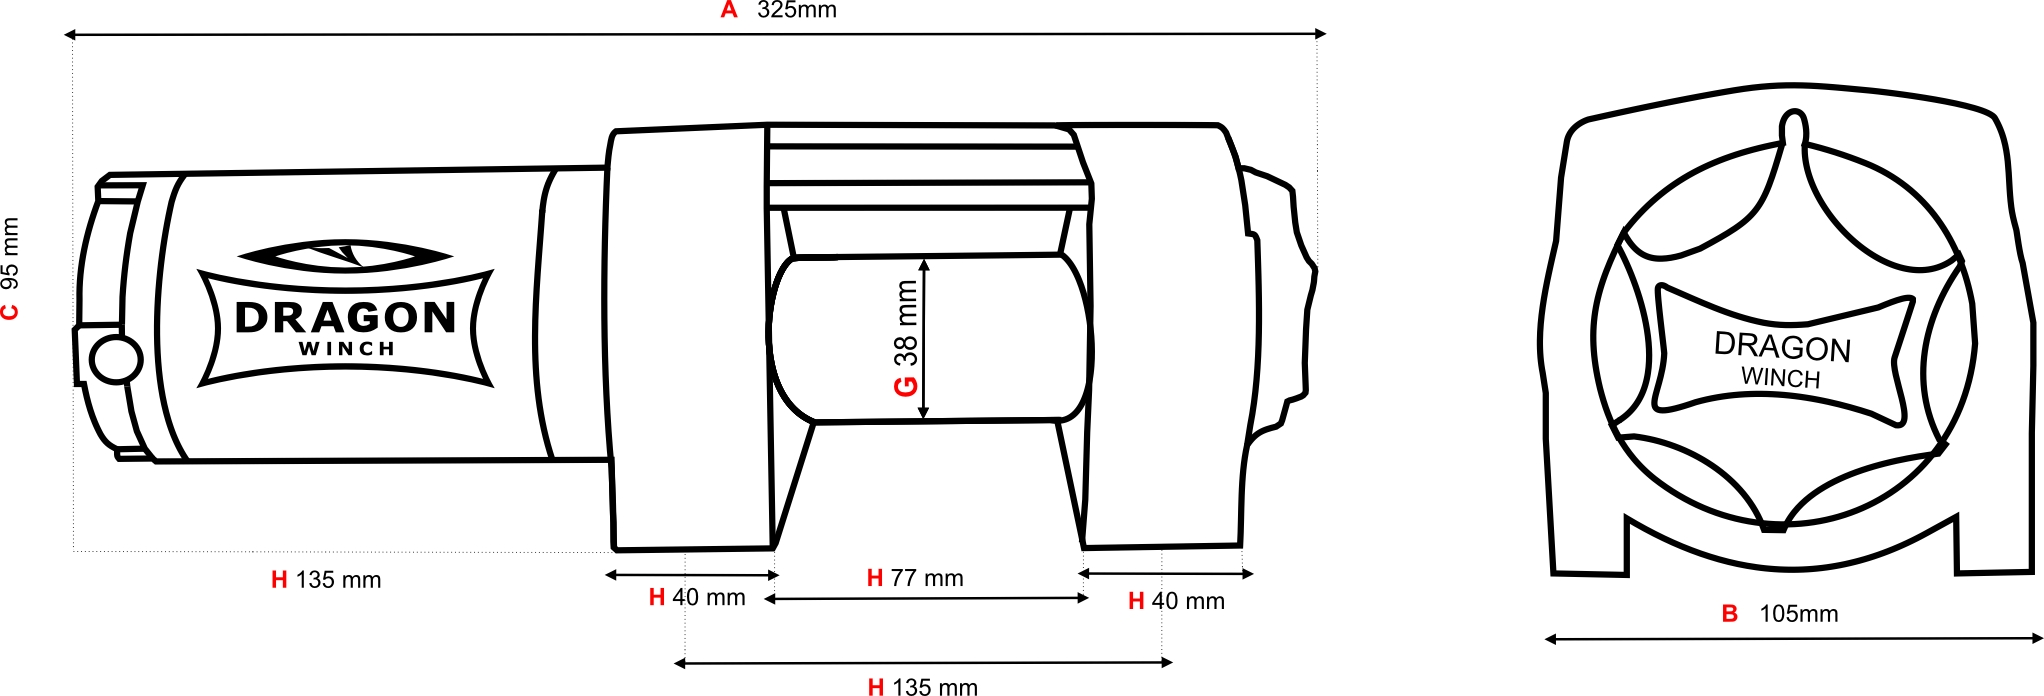 Lbs Winch Wiring Diagram As Well Winch Solenoid Switch Wiring Diagram